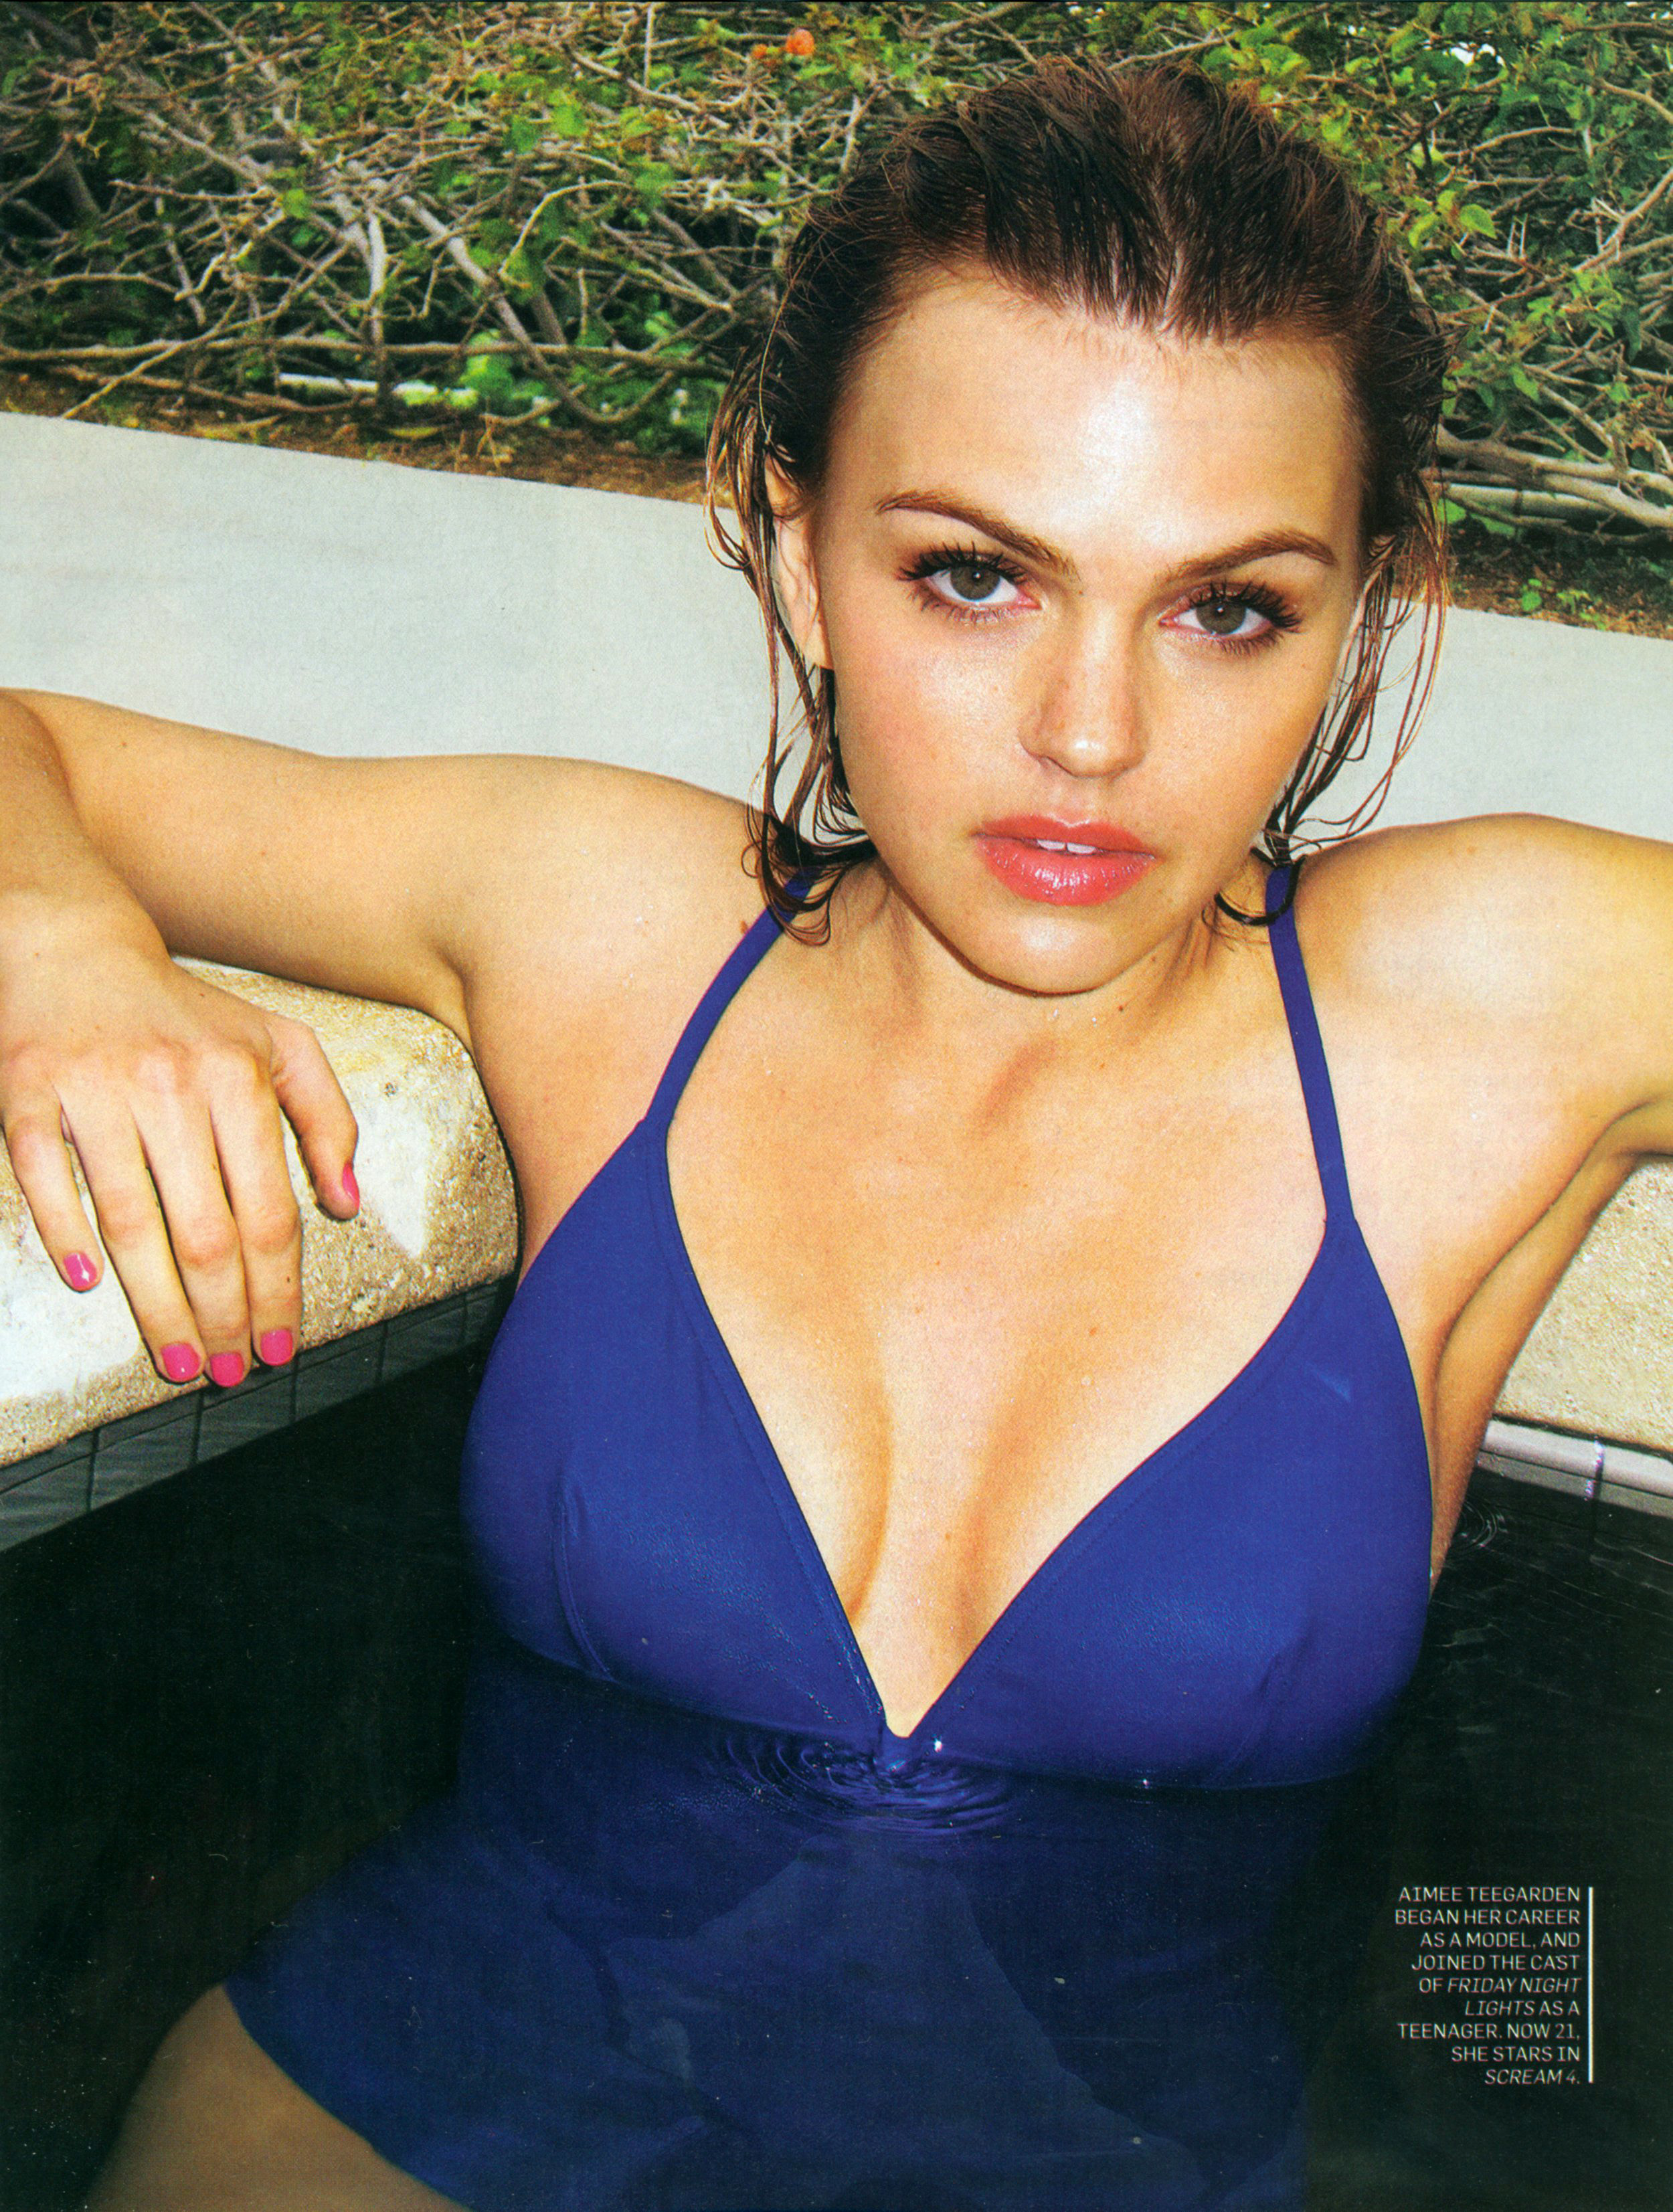 aimee teegarden magazine scans HD Wallpaper